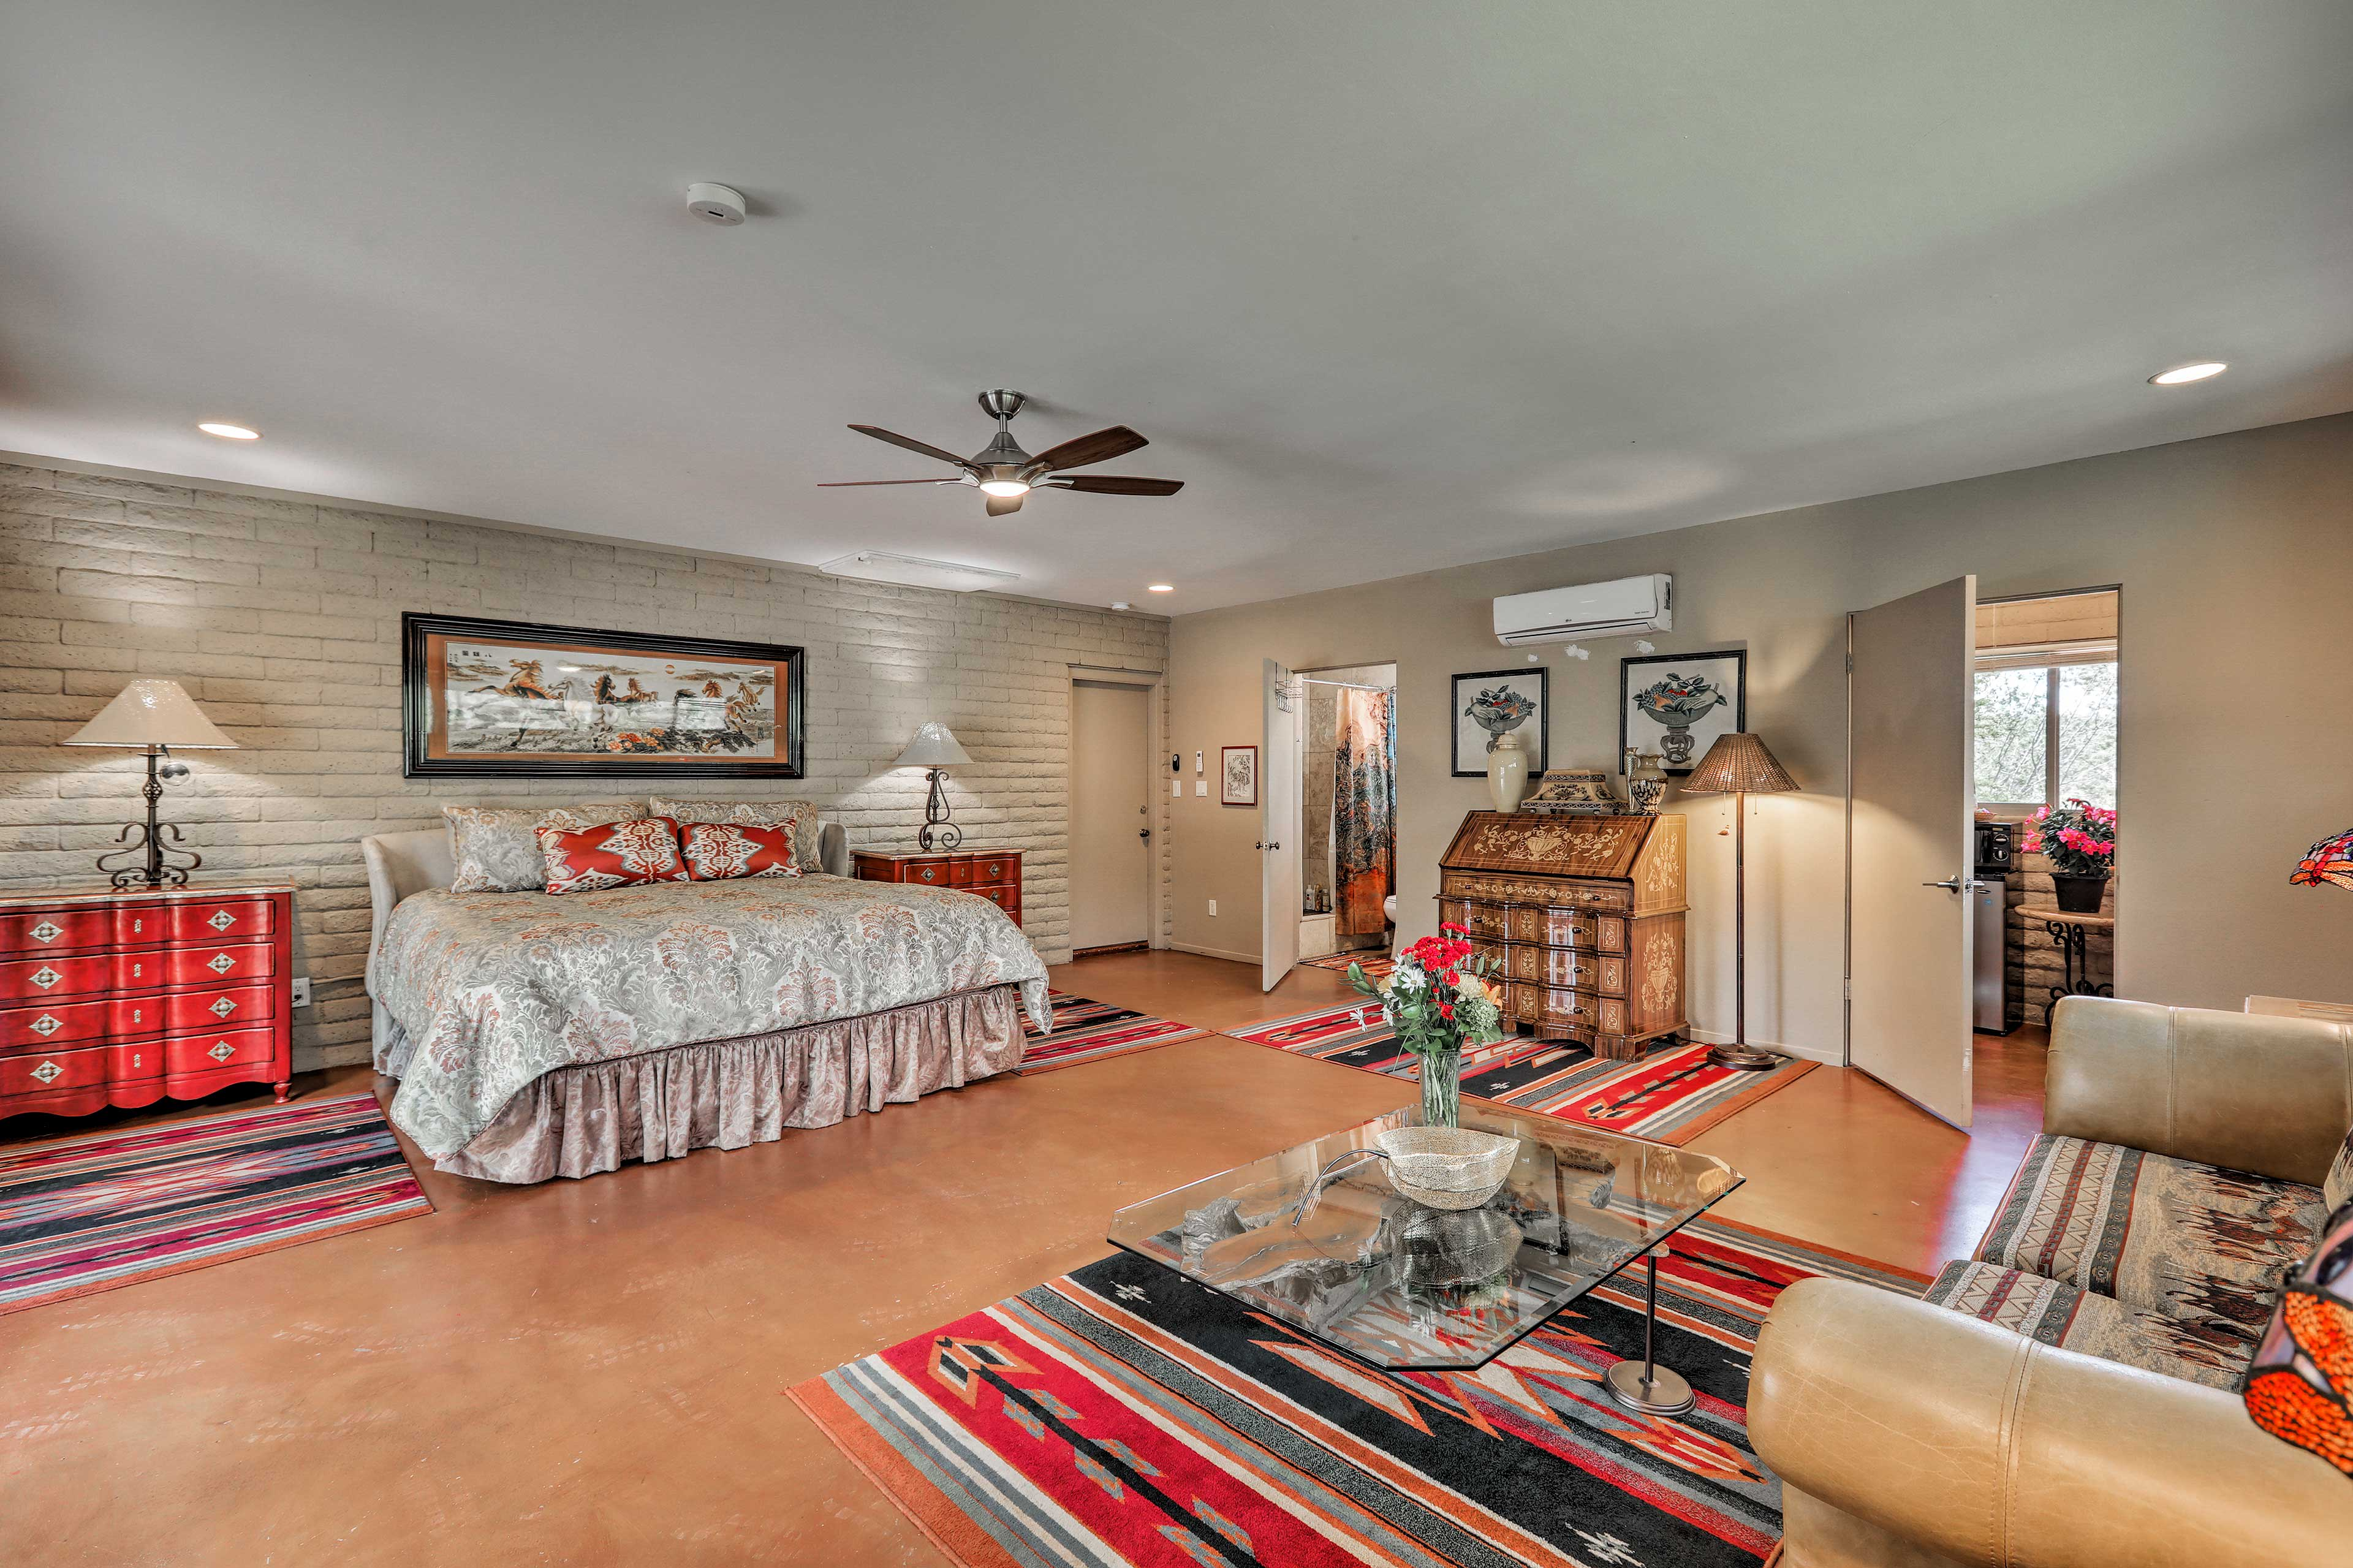 The 400-square-foot open-concept space has plenty enough room for the 2 of you.